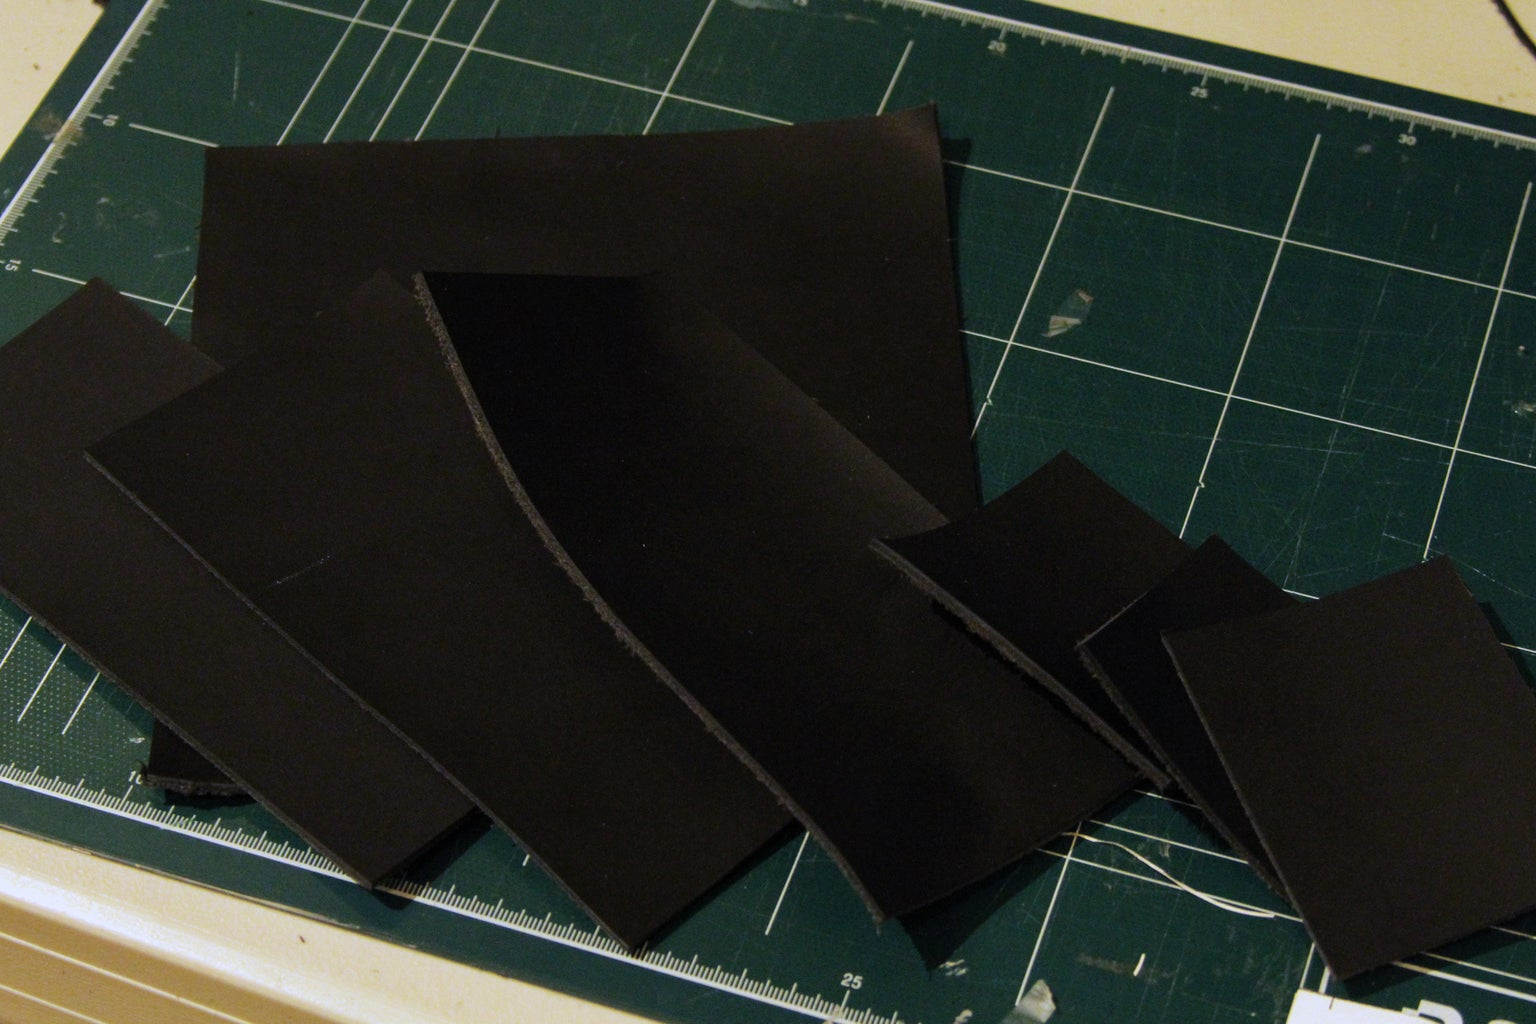 Step 5: Cut Them Out